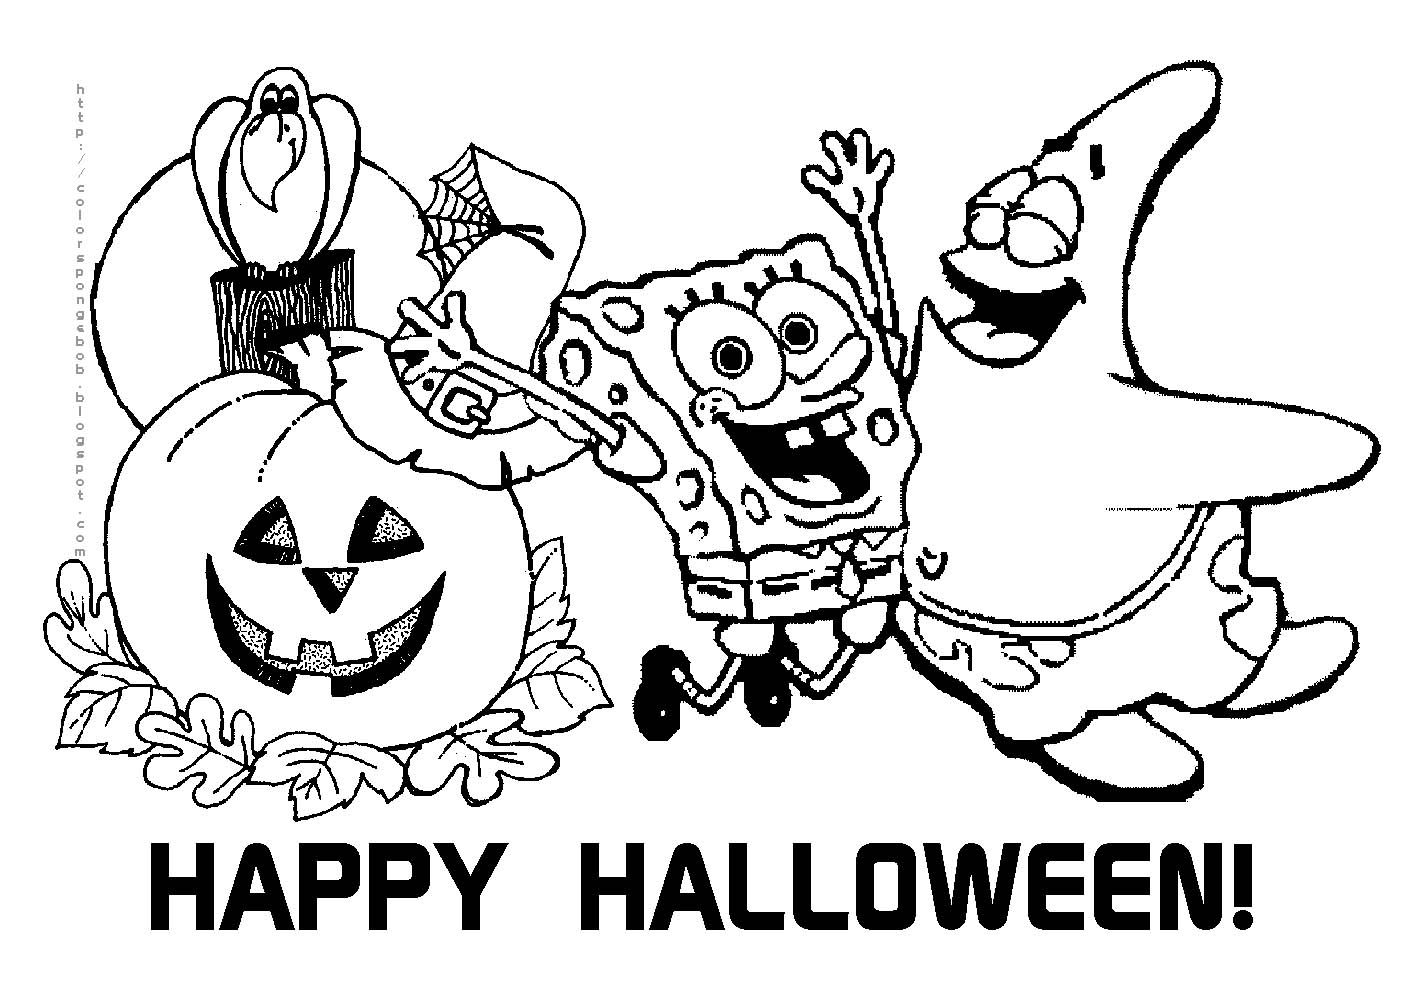 Spongebob Coloring Pages Halloween Coloring Pages Free Halloween Coloring Pages Elmo Coloring Pages